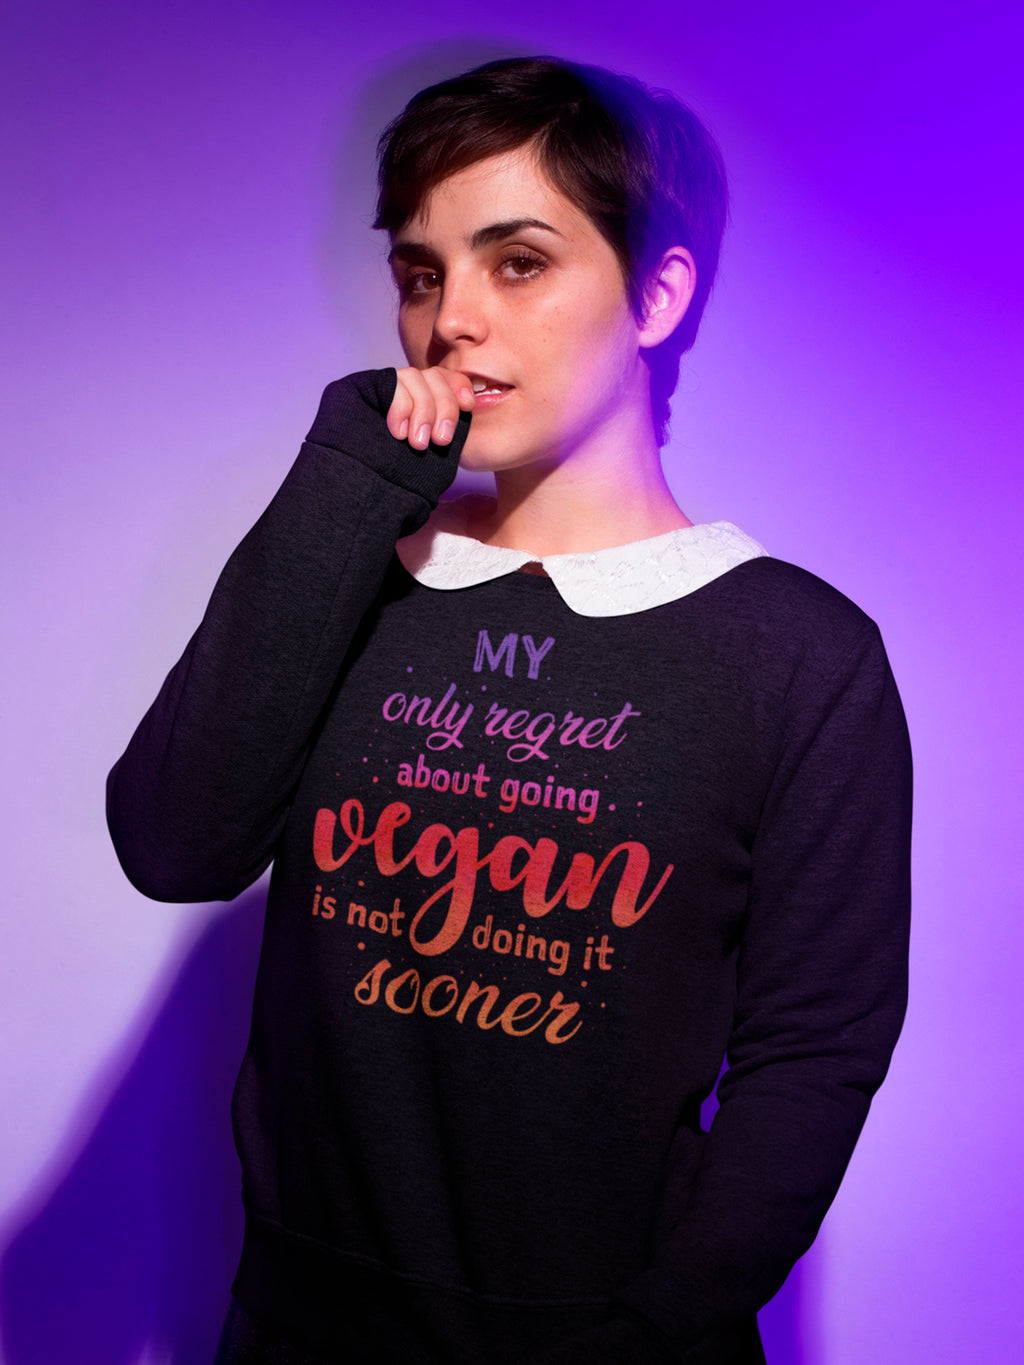 About going vegan sweatshirt